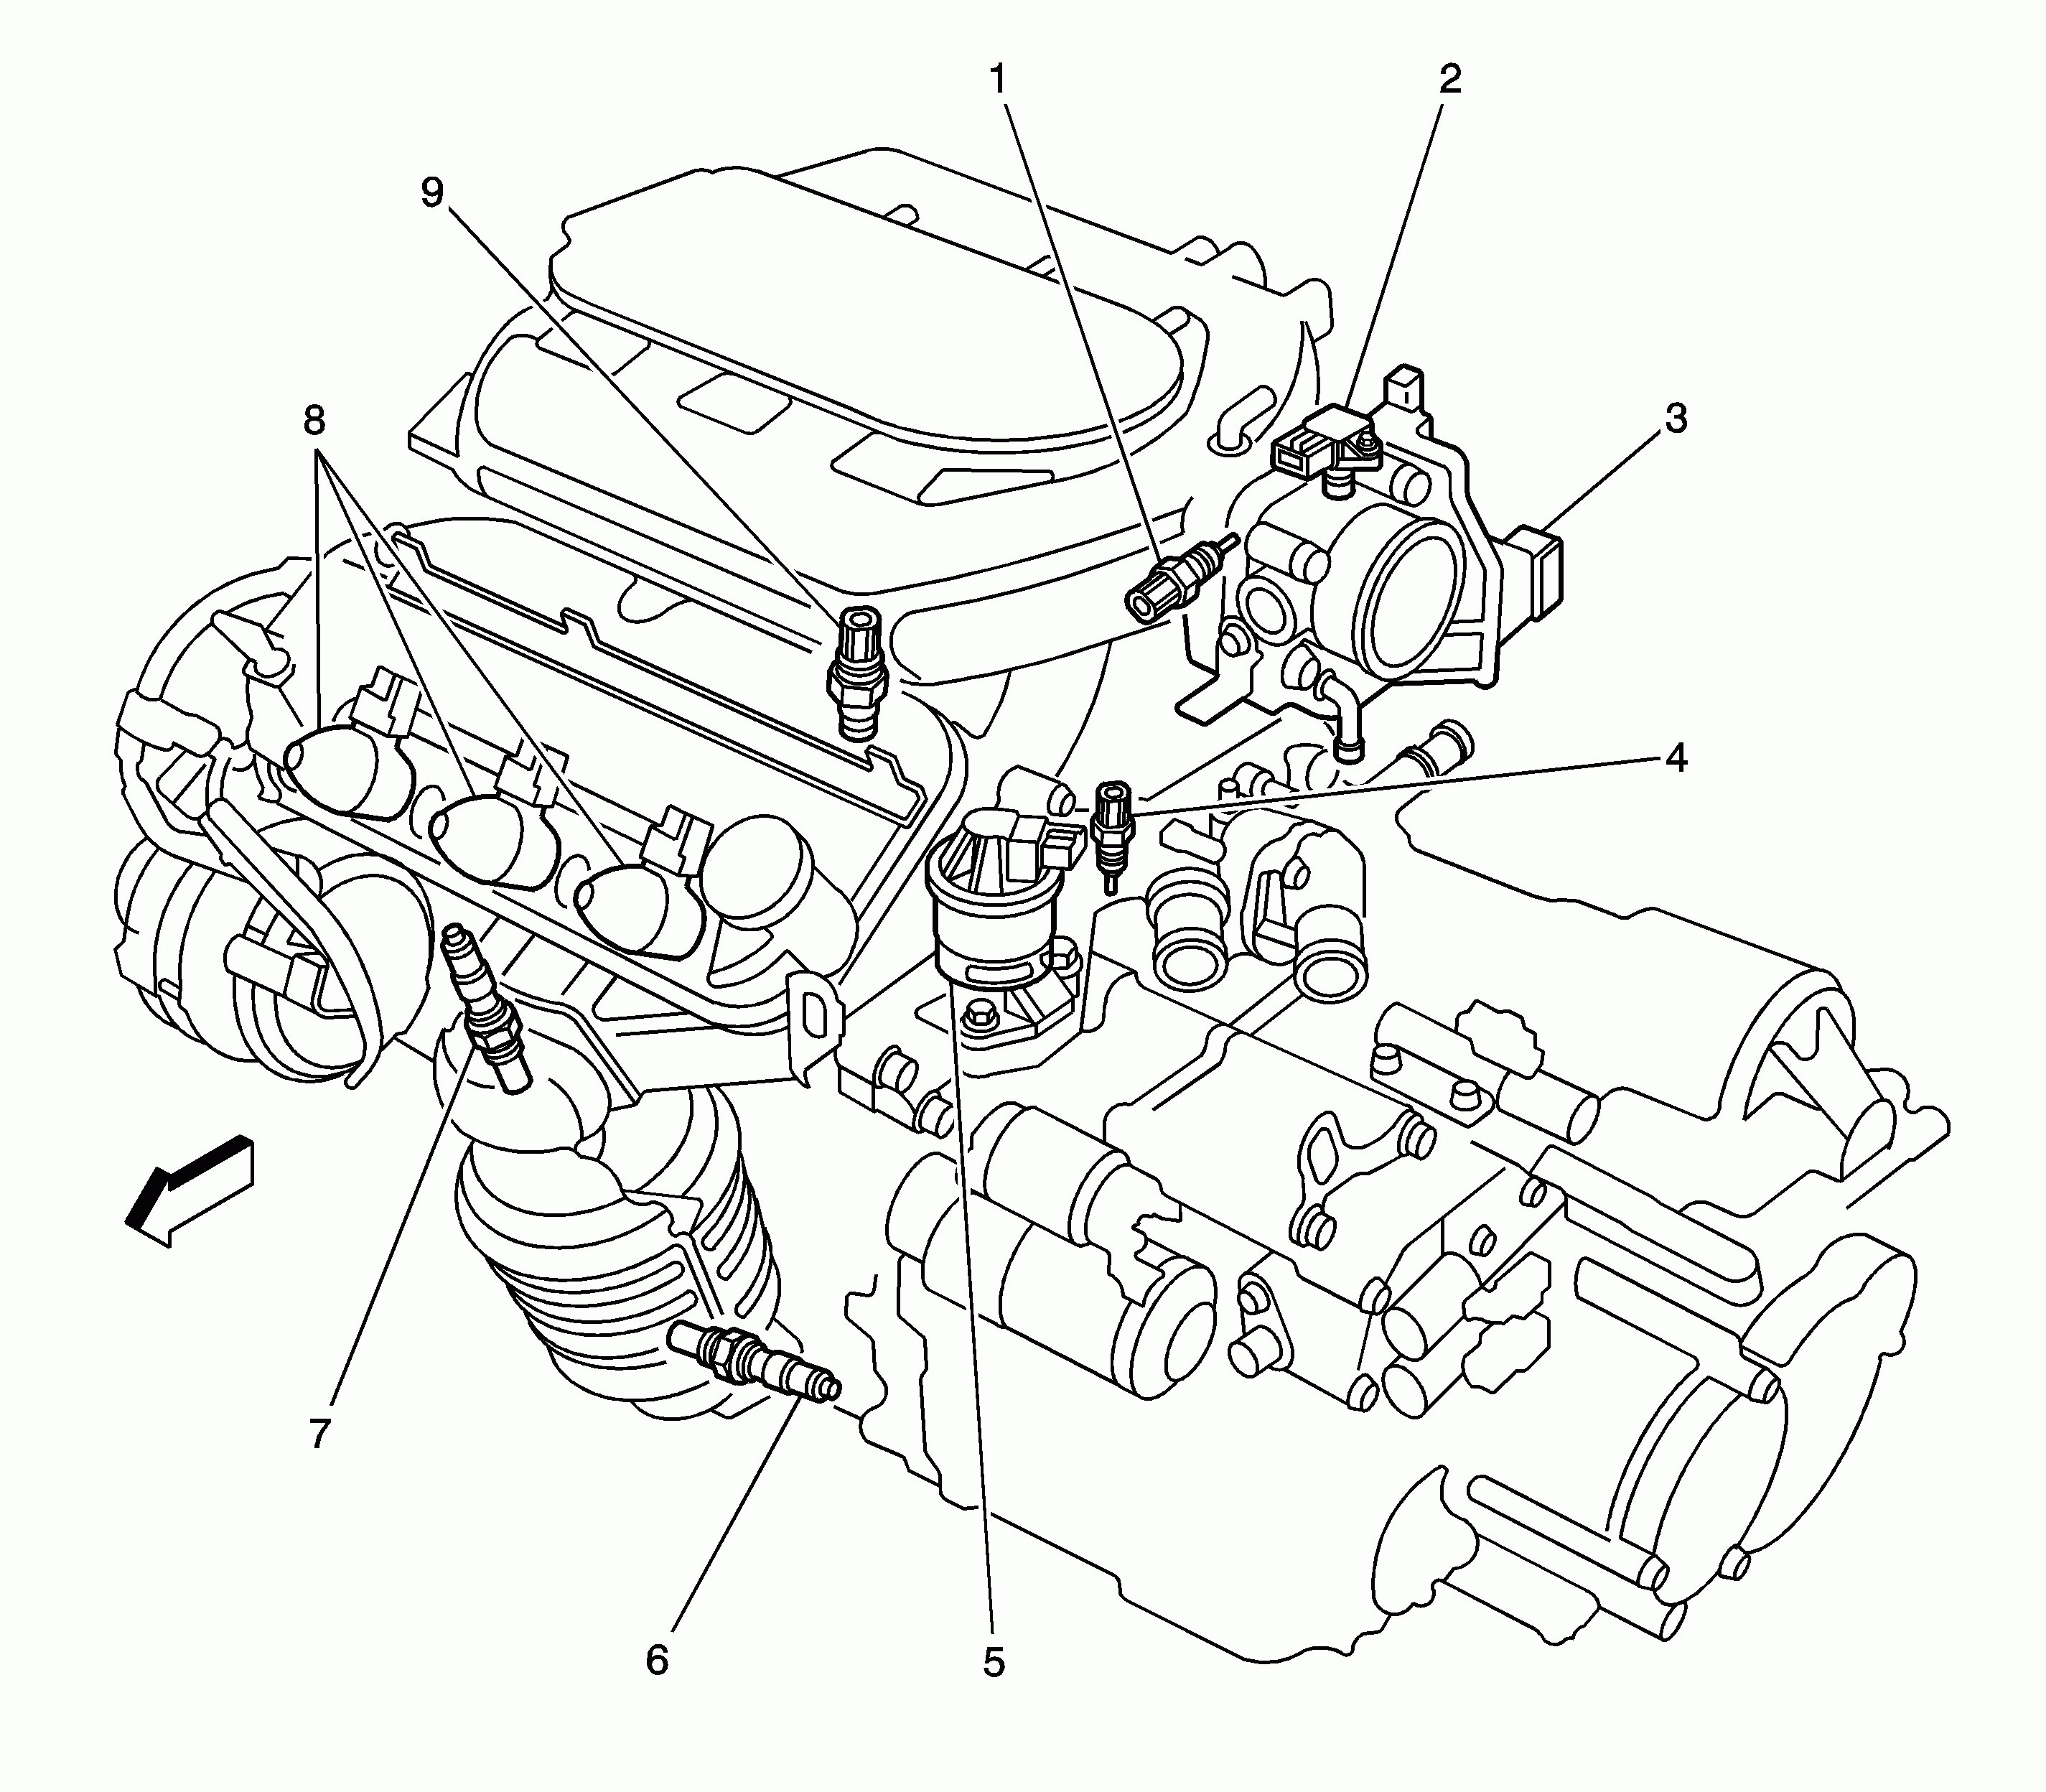 96 lumina engine diagram